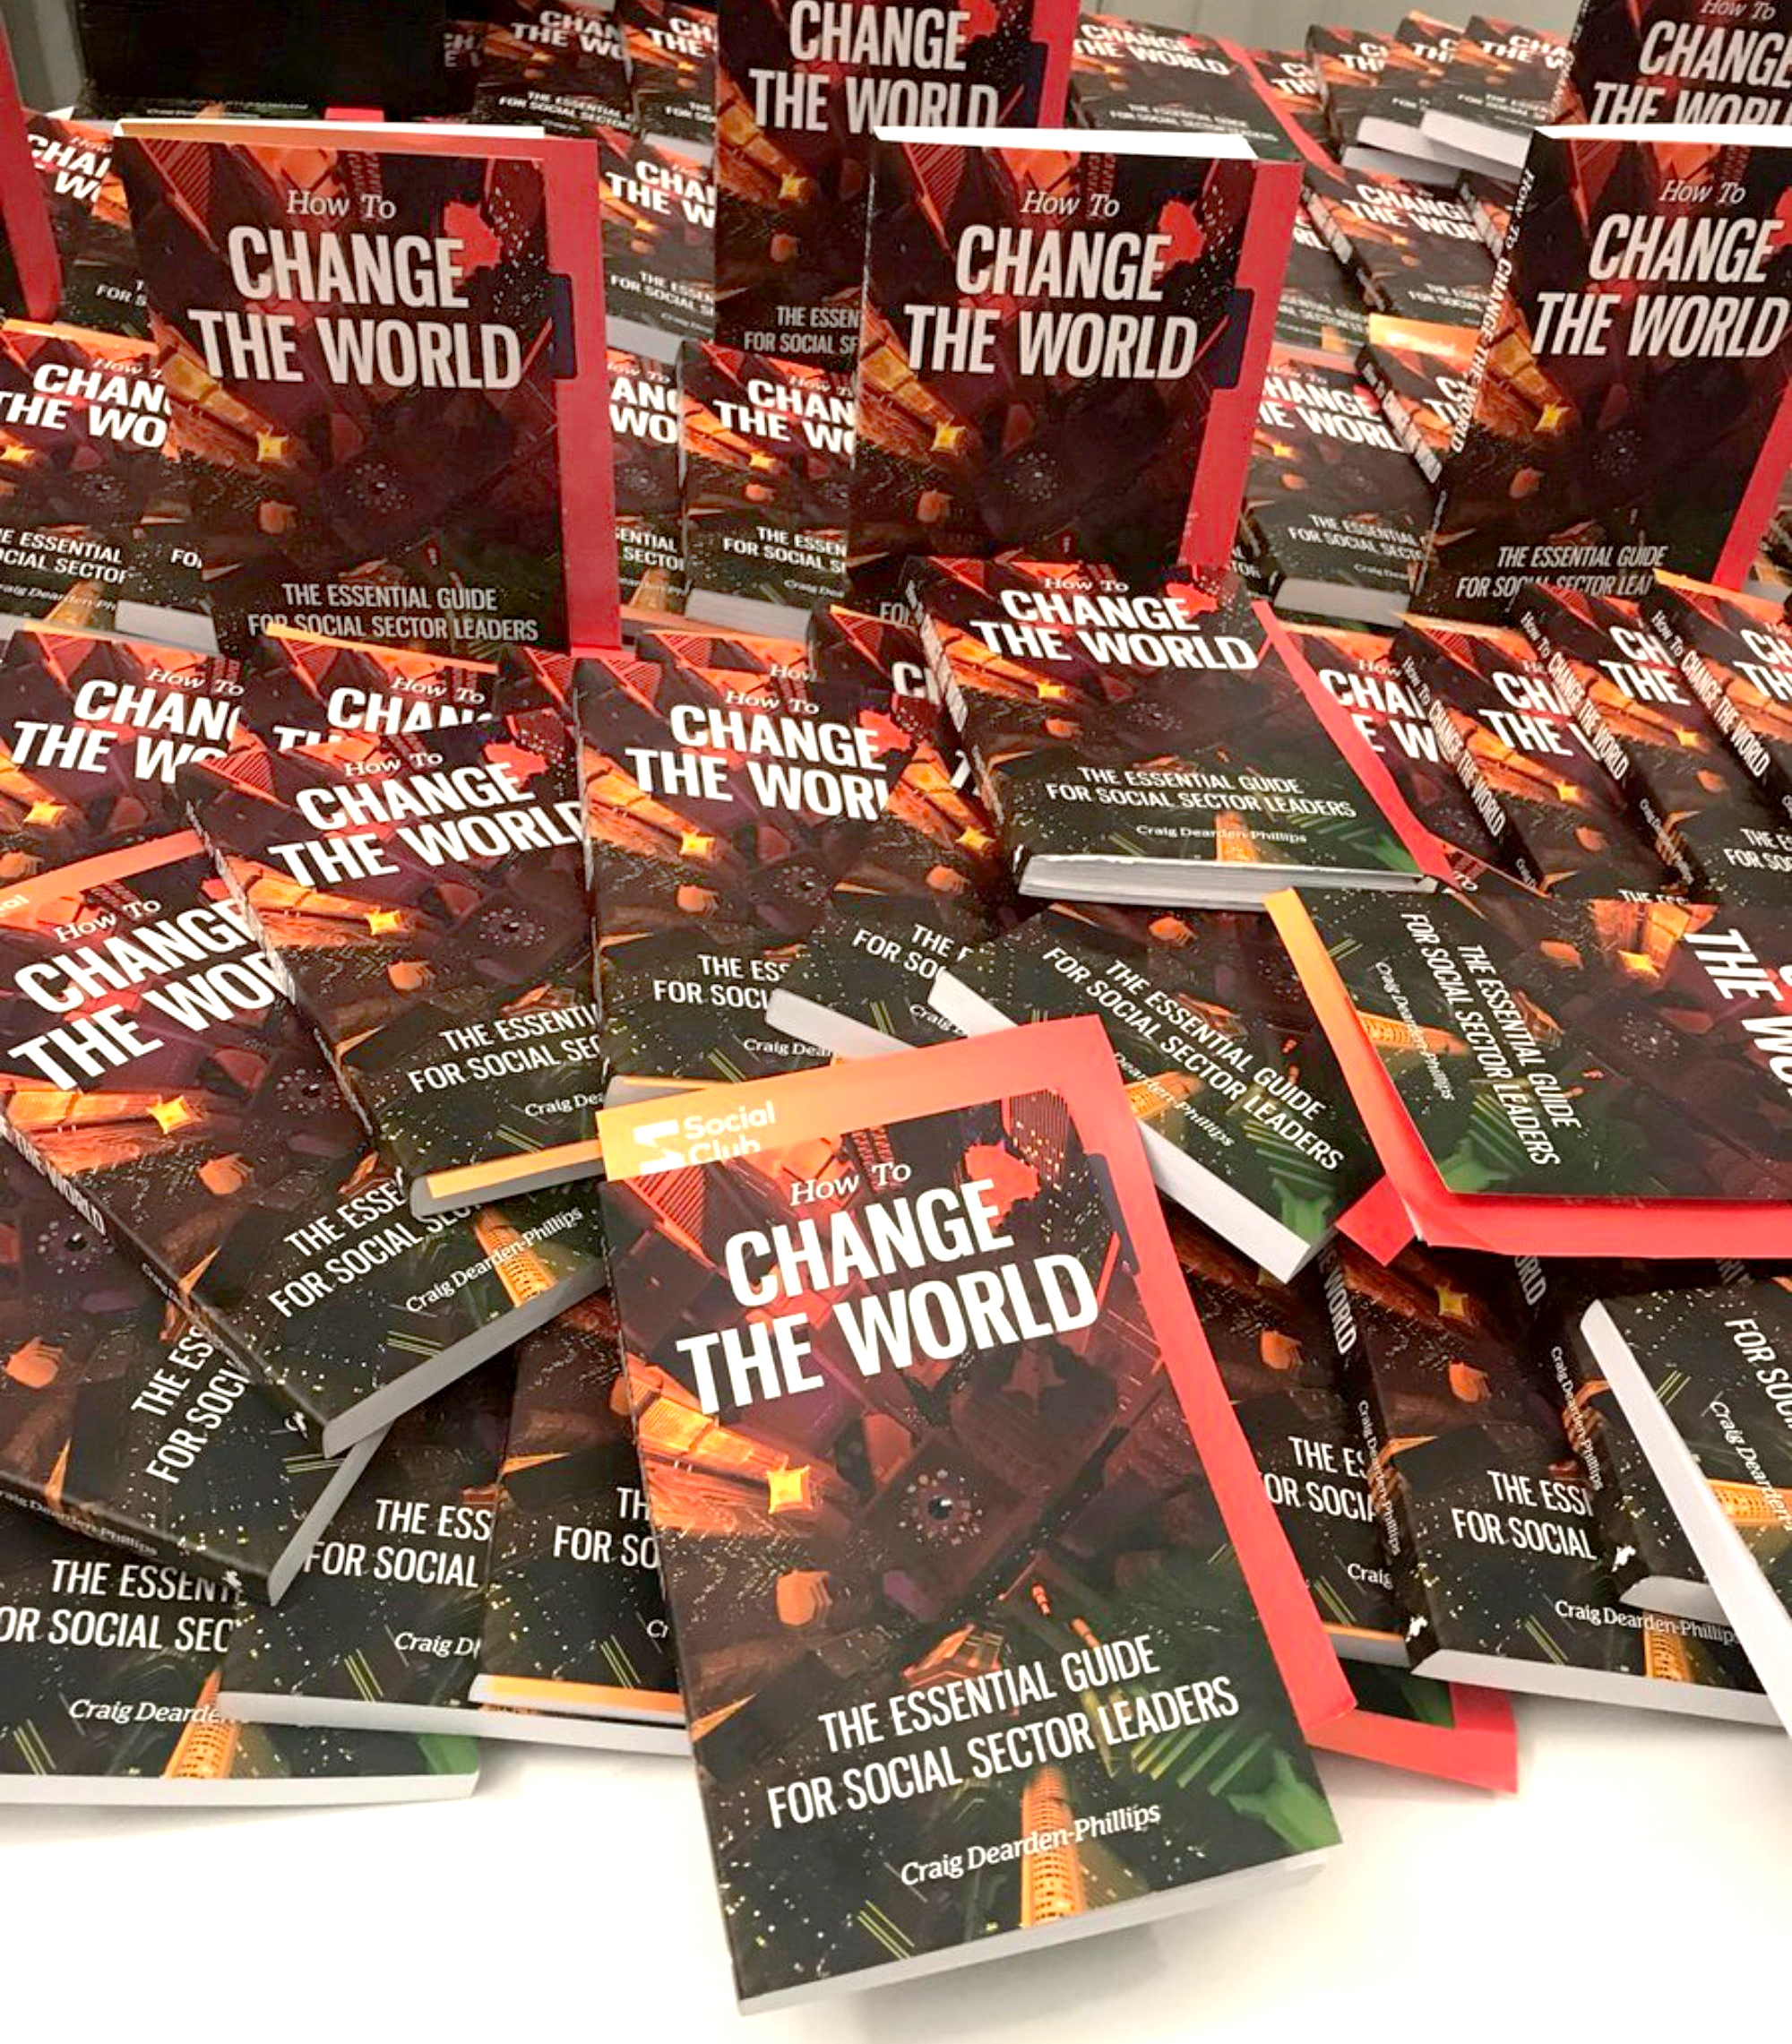 change-the-world-published.jpg